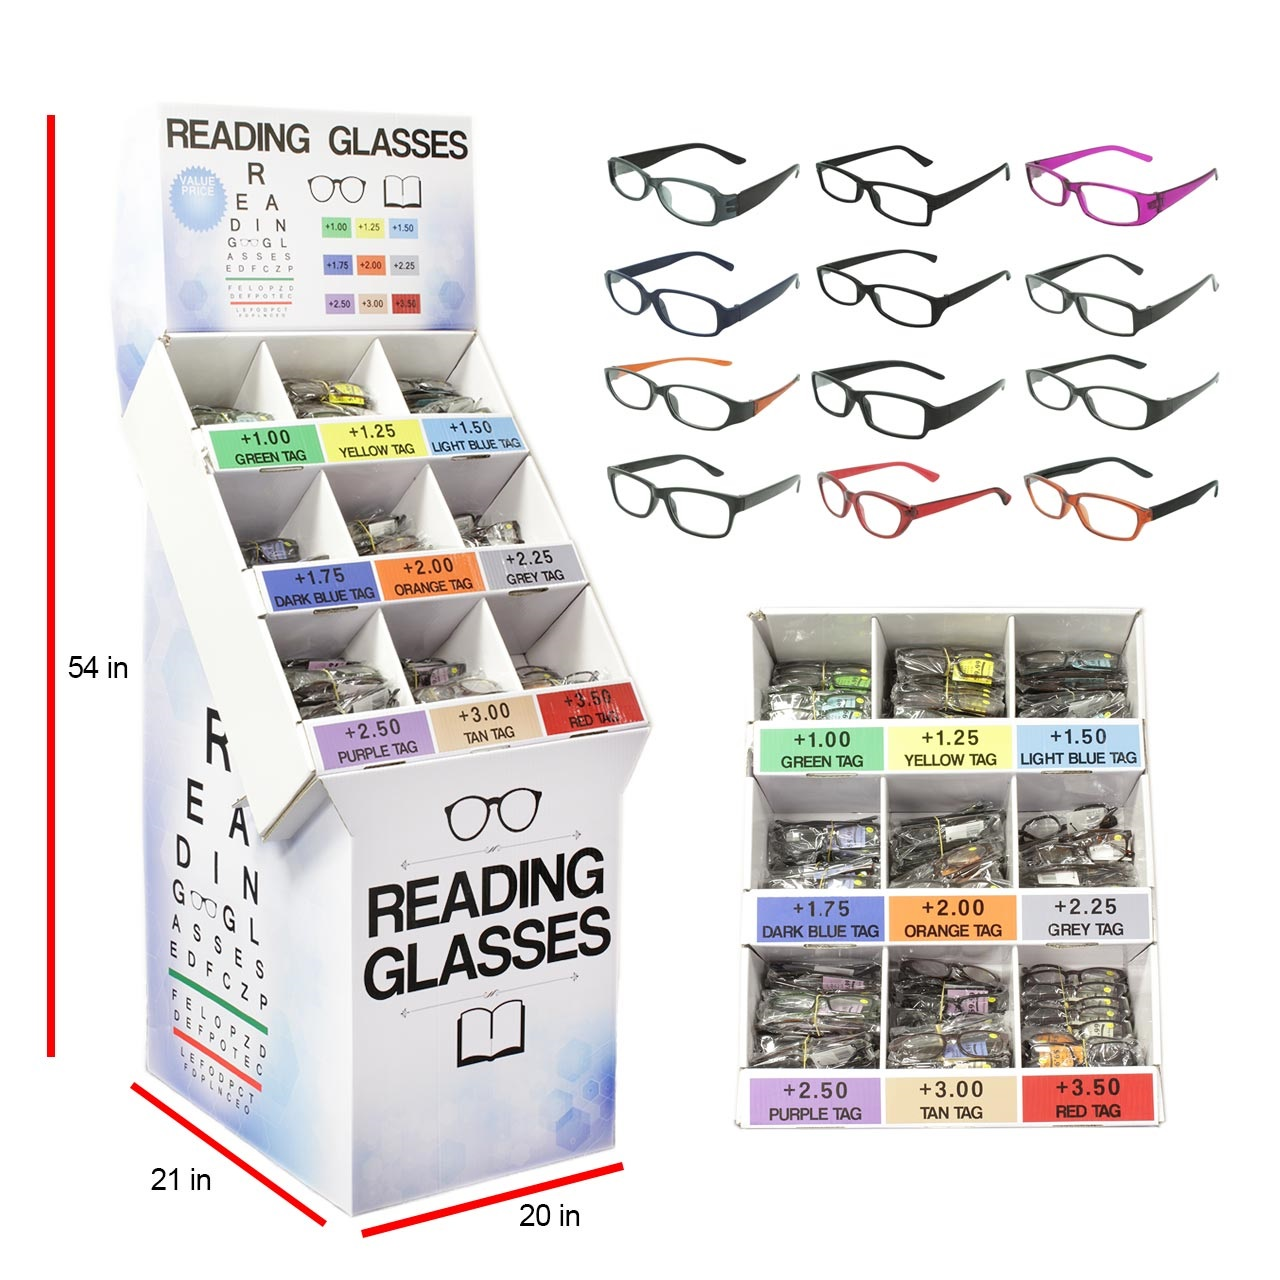 87a656b9616 Cheap Reading Glasses With Display - Wholesale Price-Closeouts